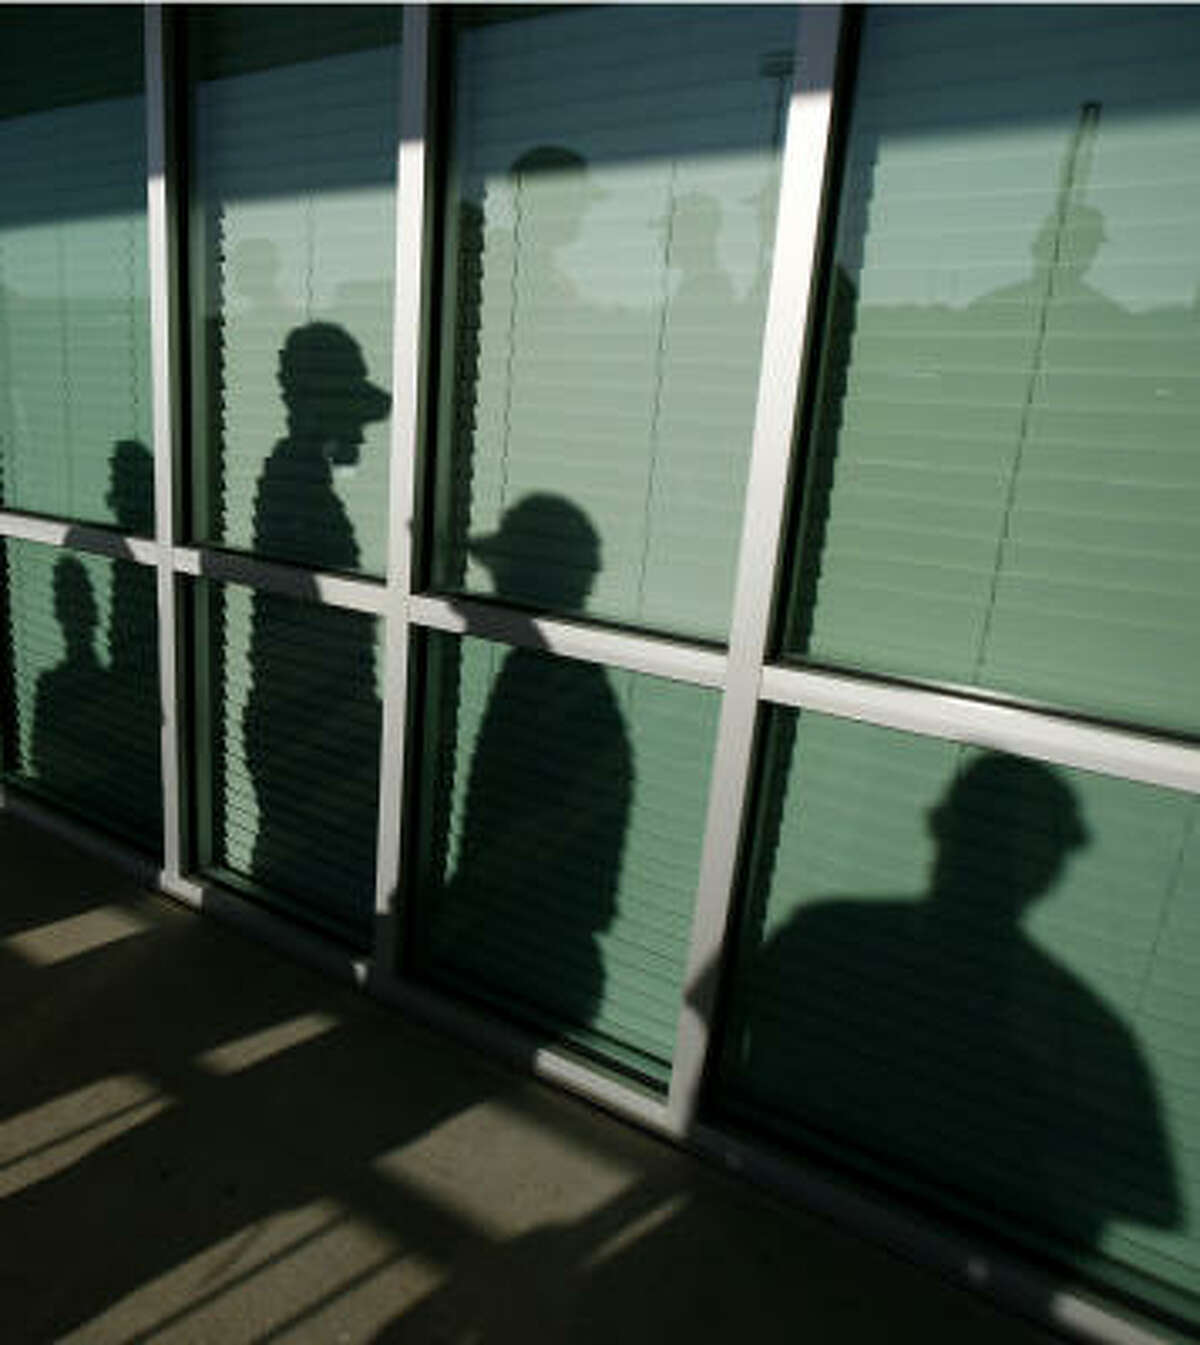 The shadows of Astros players are seen as they wait in line to be photographed during media day at spring training camp.